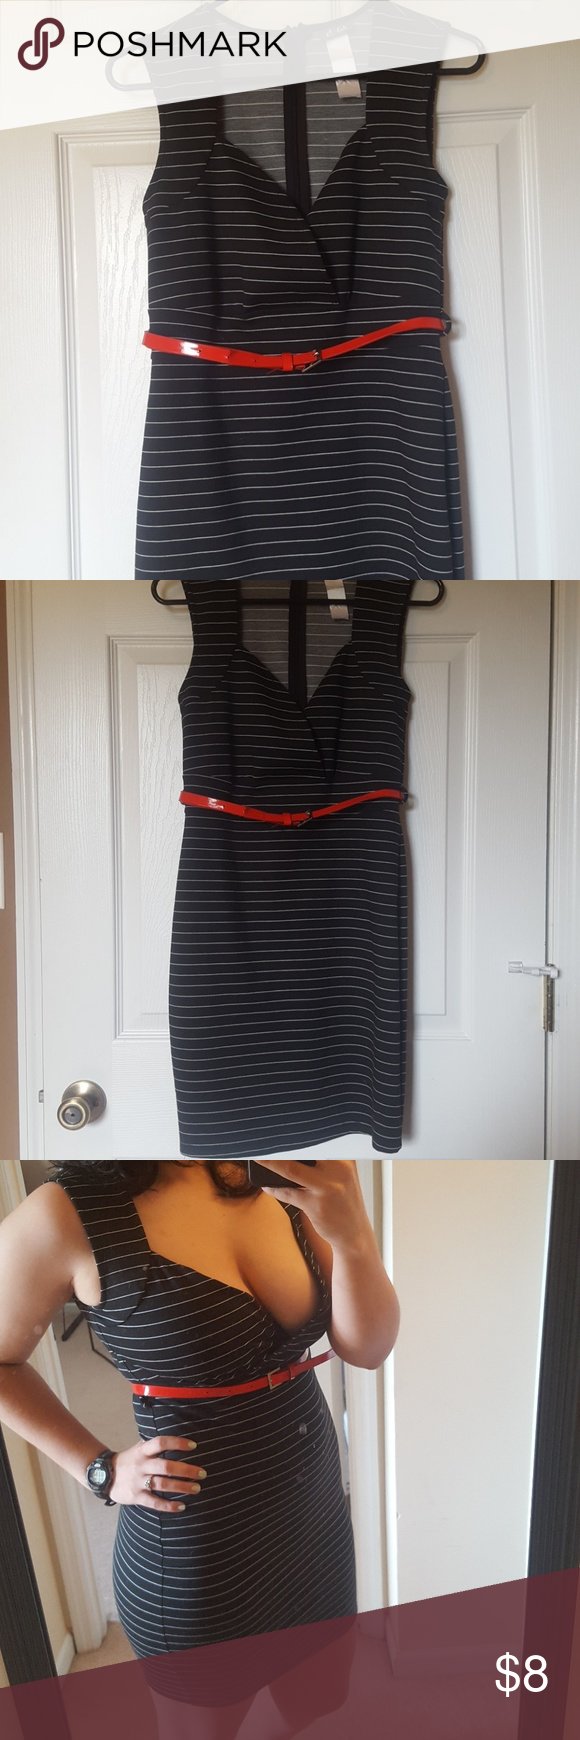 Stripped dress with red belt stripped dress red belt and dresses